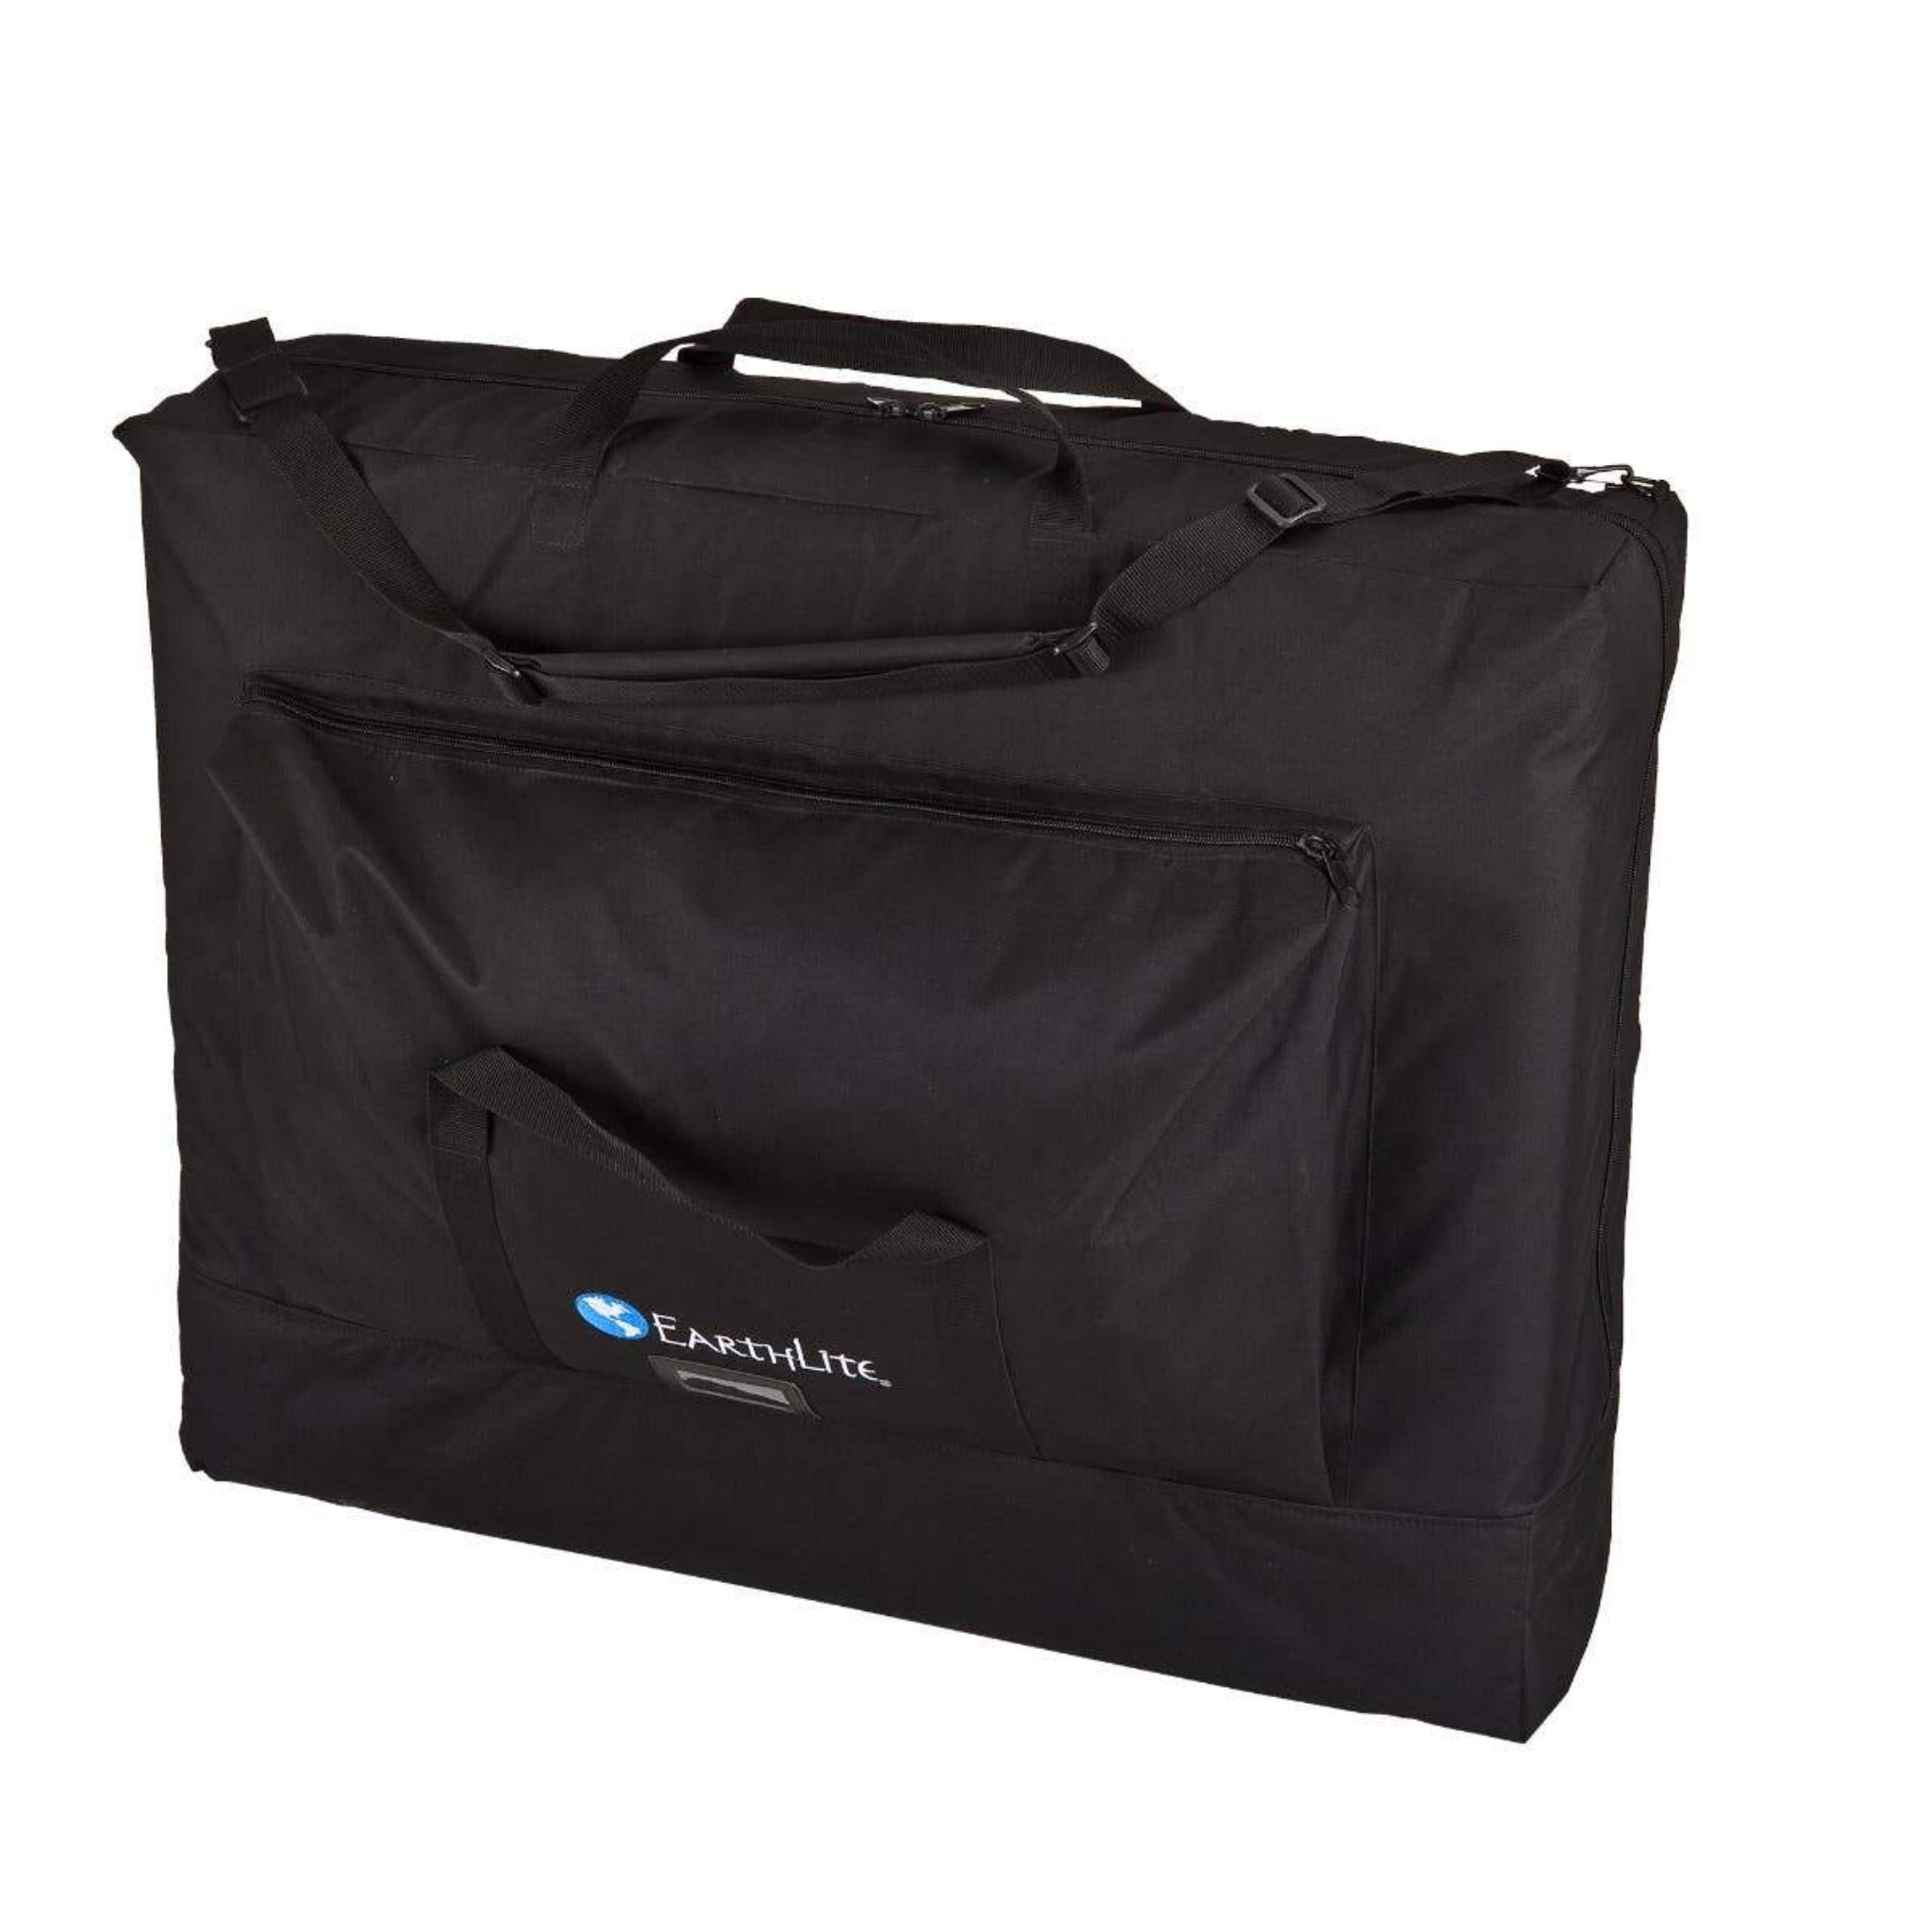 EarthLite Massage Table Carrying Case